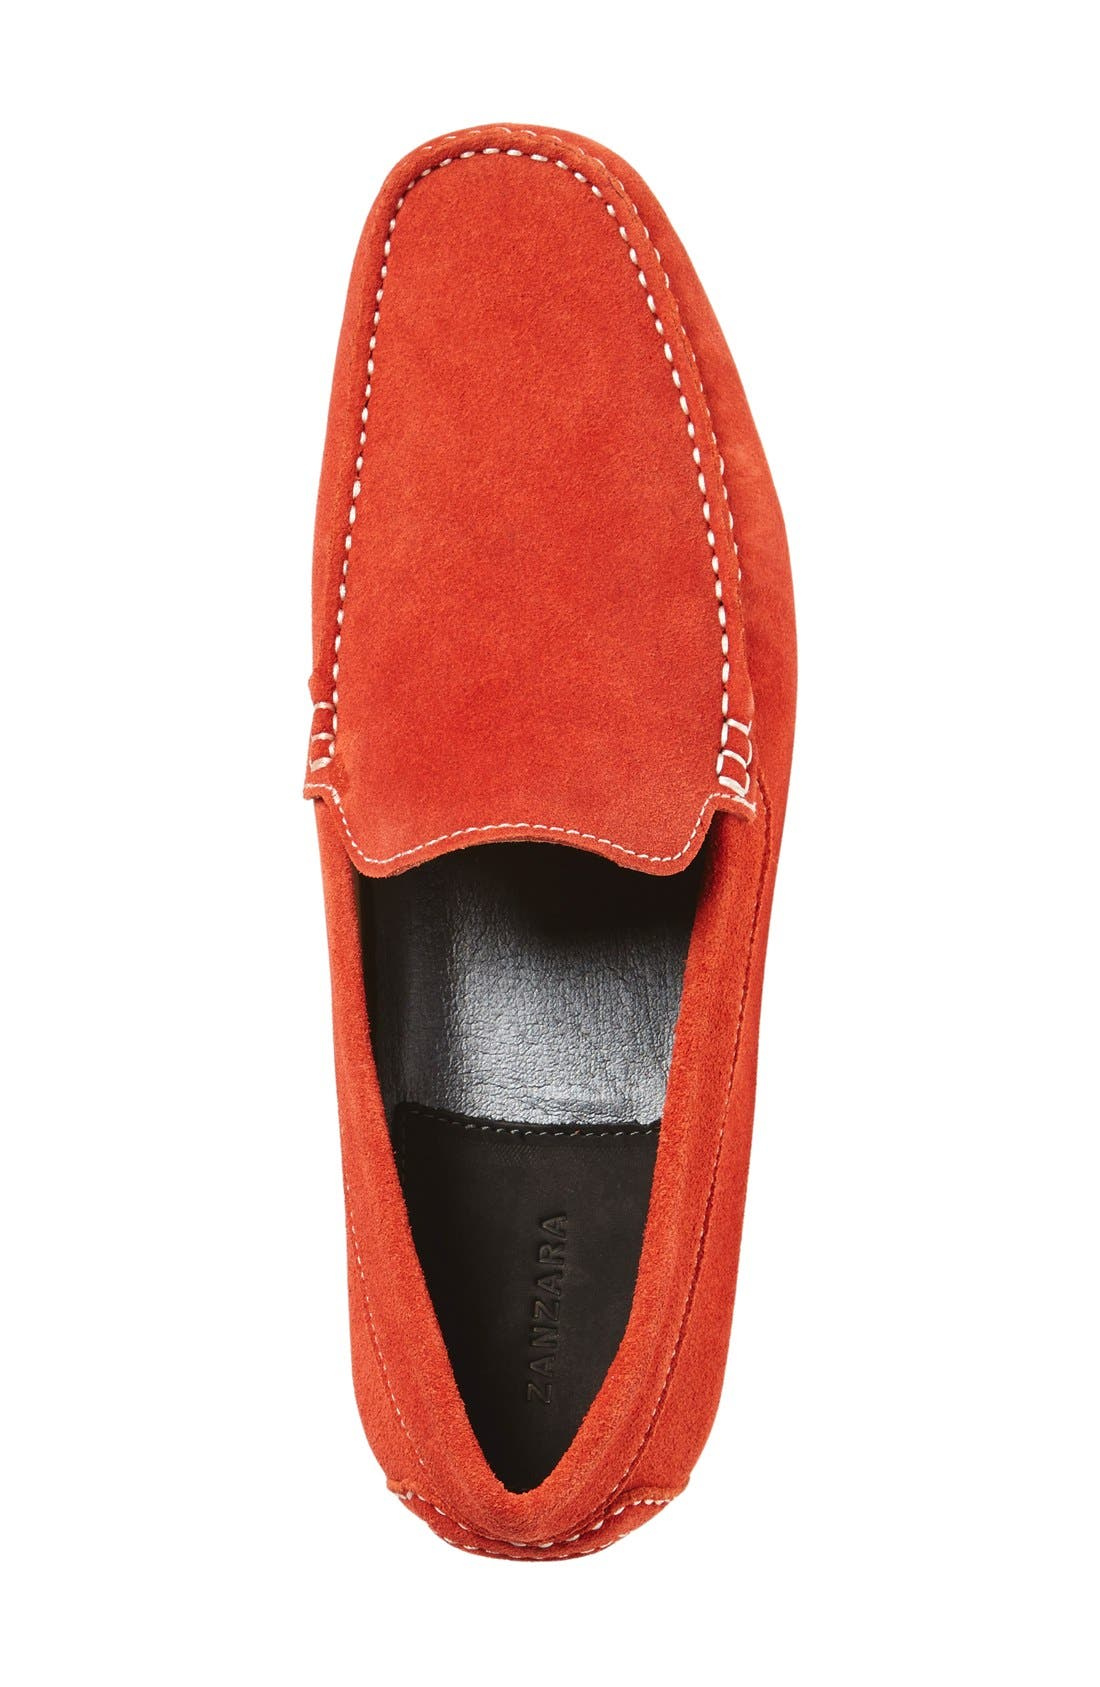 'Picasso' Slip-On Driver,                             Alternate thumbnail 4, color,                             Orange Leather